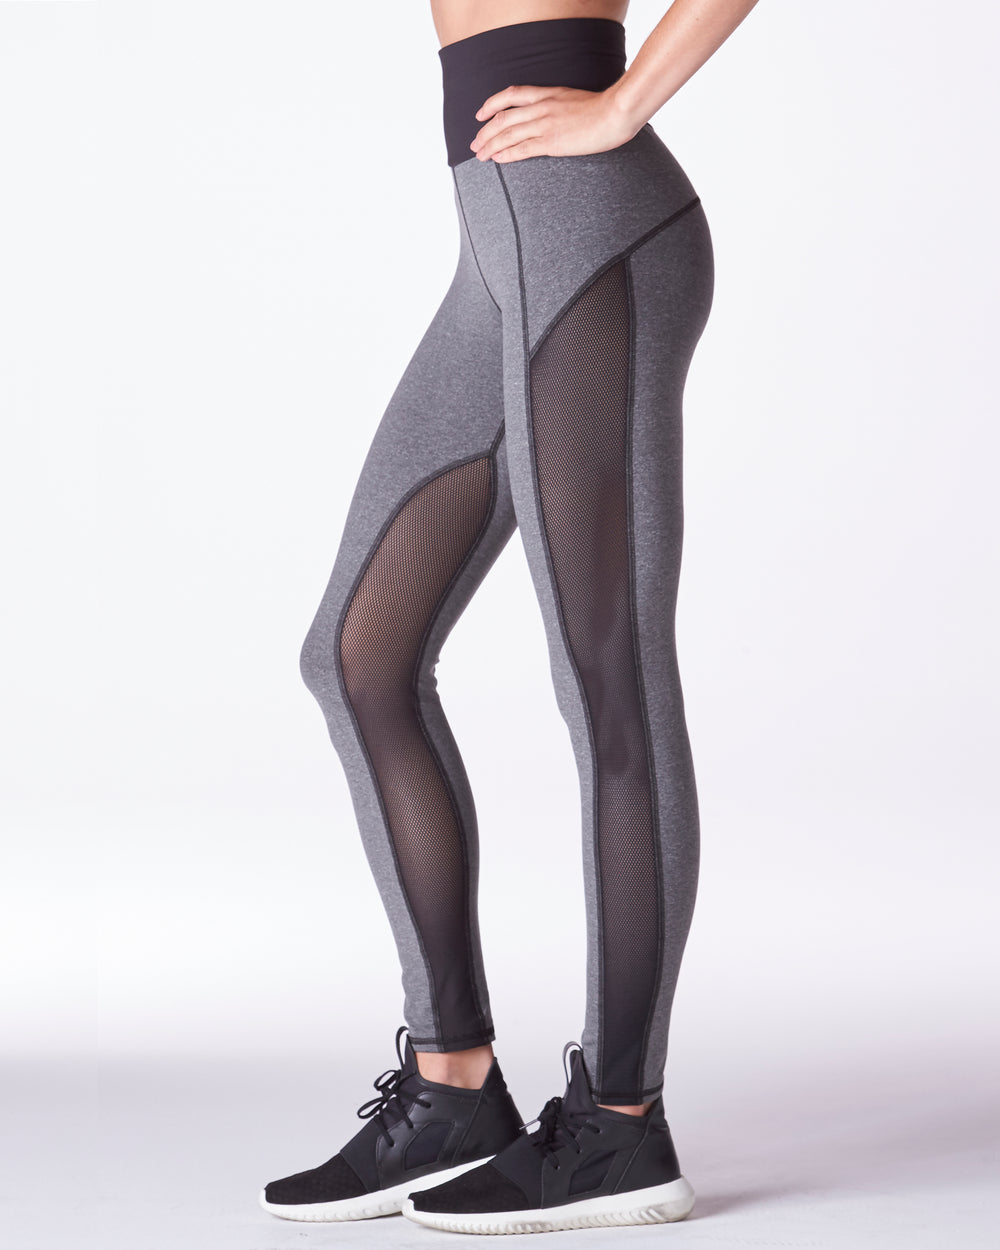 Summit High Waisted Legging - Heather Grey